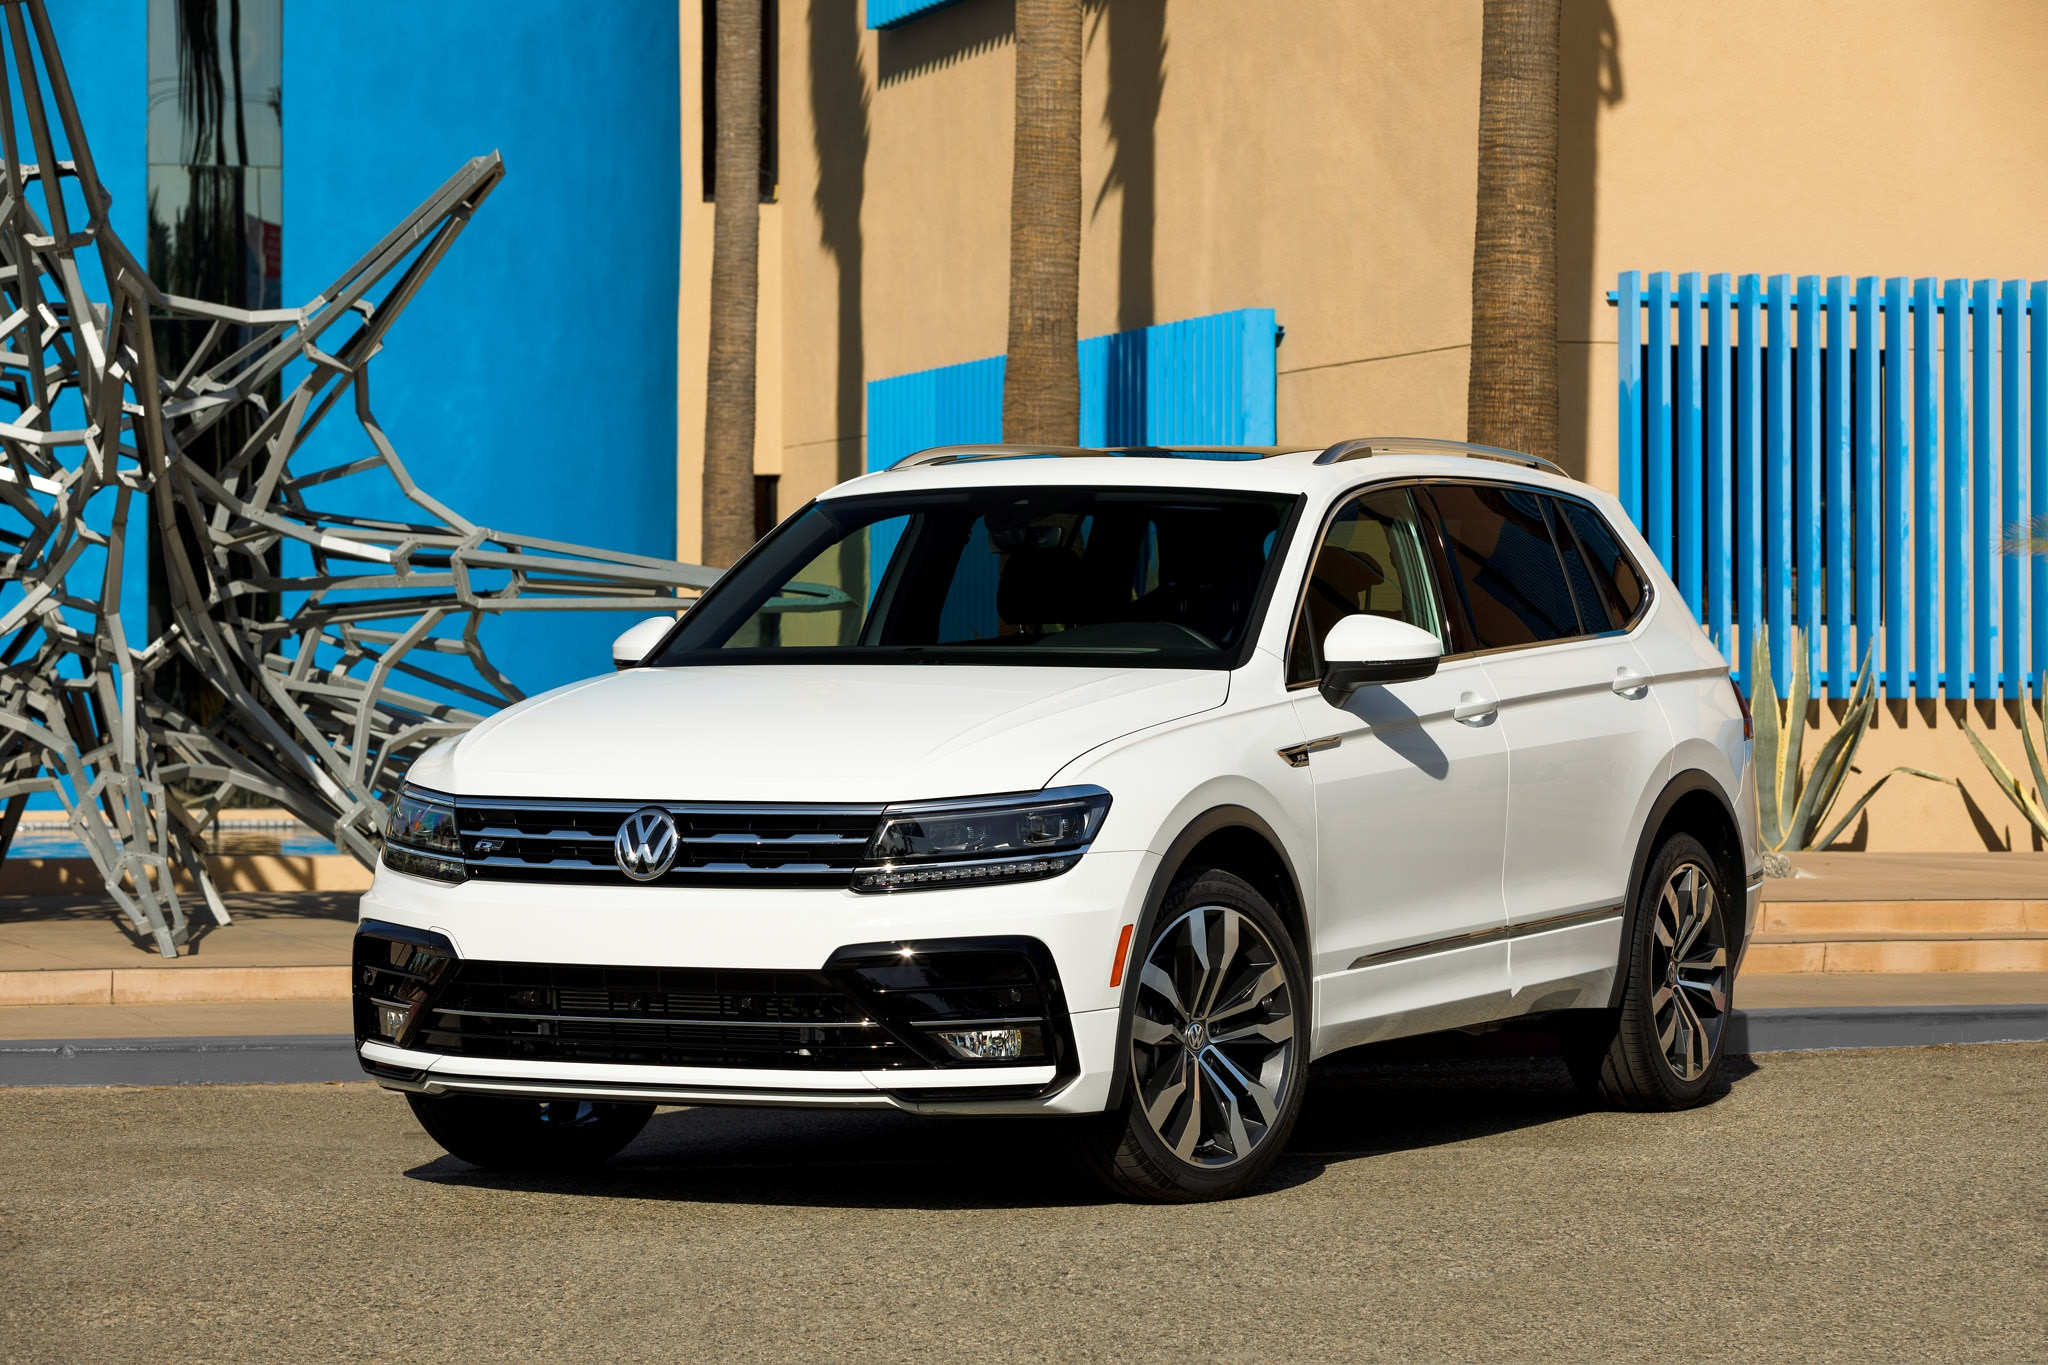 Volkswagen Tiguan R-Line shapes up